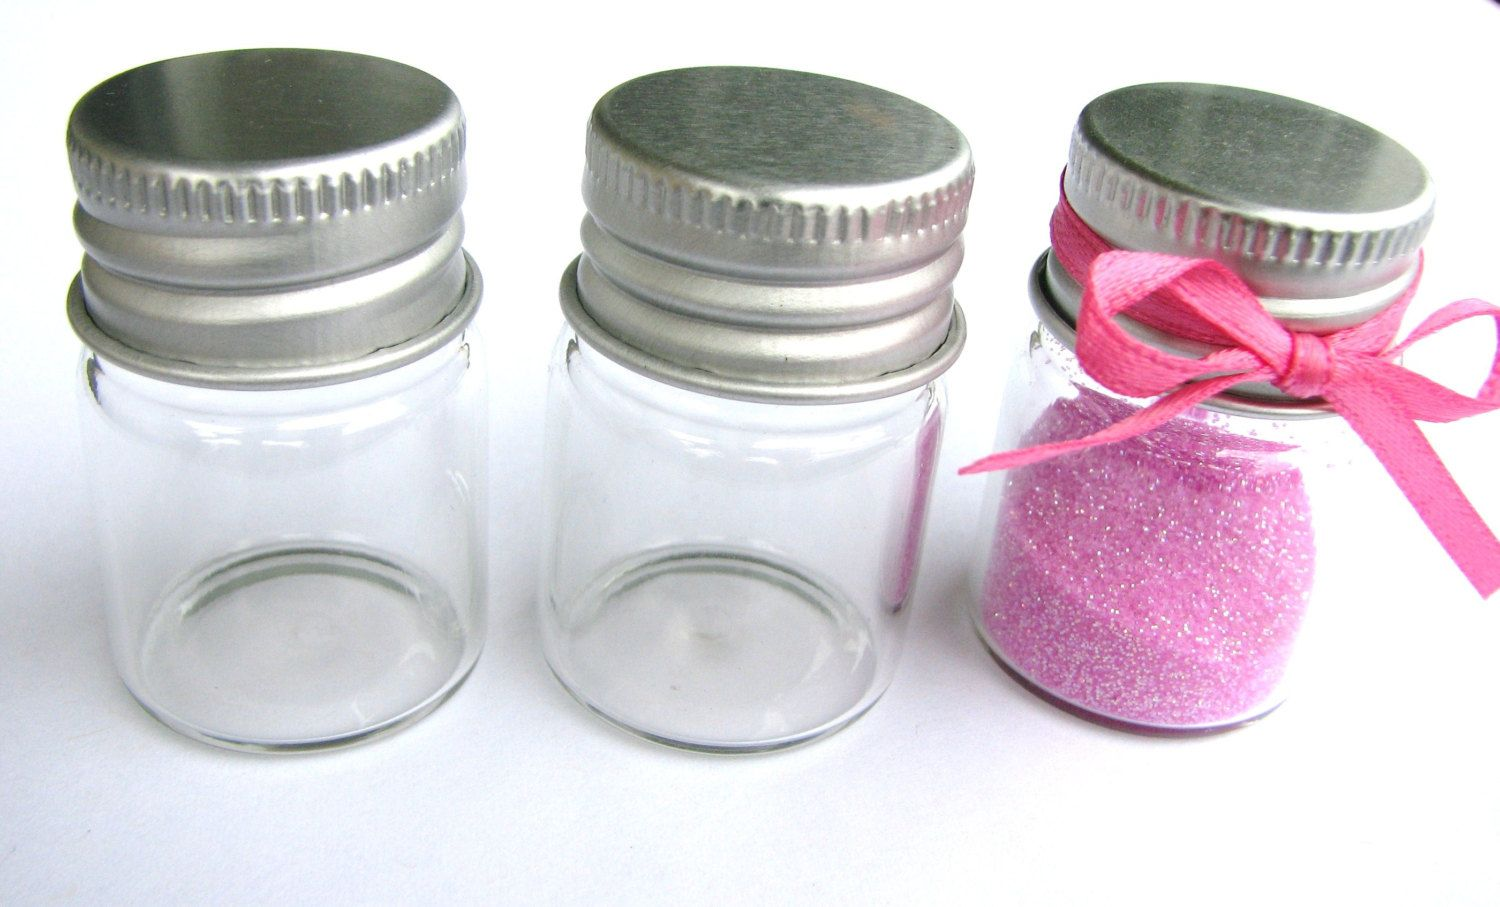 These are great bottles to use for wedding, party favors, spice jars ...